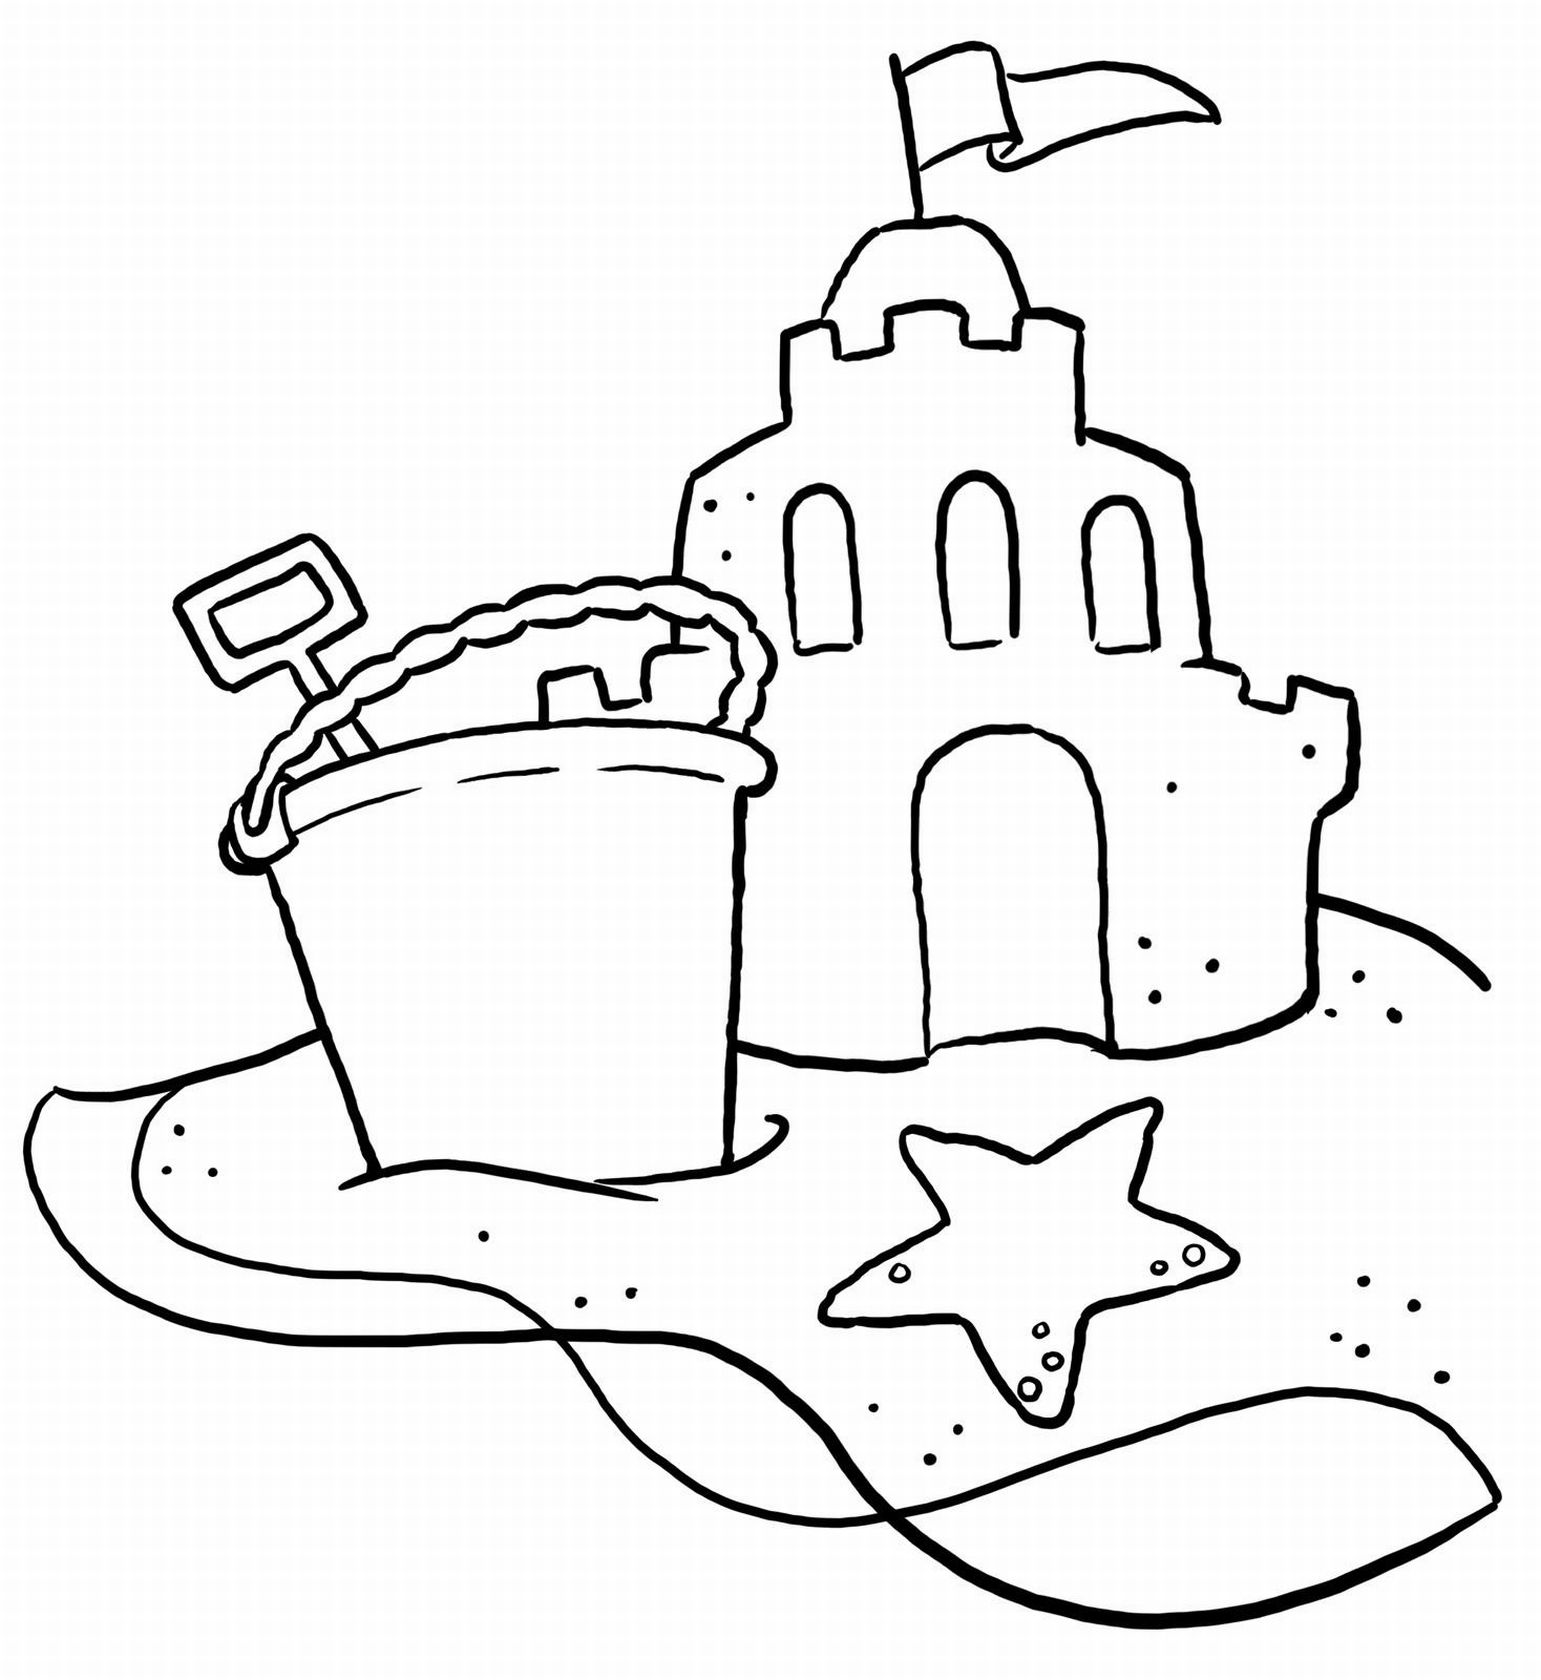 sand castle coloring pictures sandcastle coloring pages coloring pages to download and sand pictures coloring castle